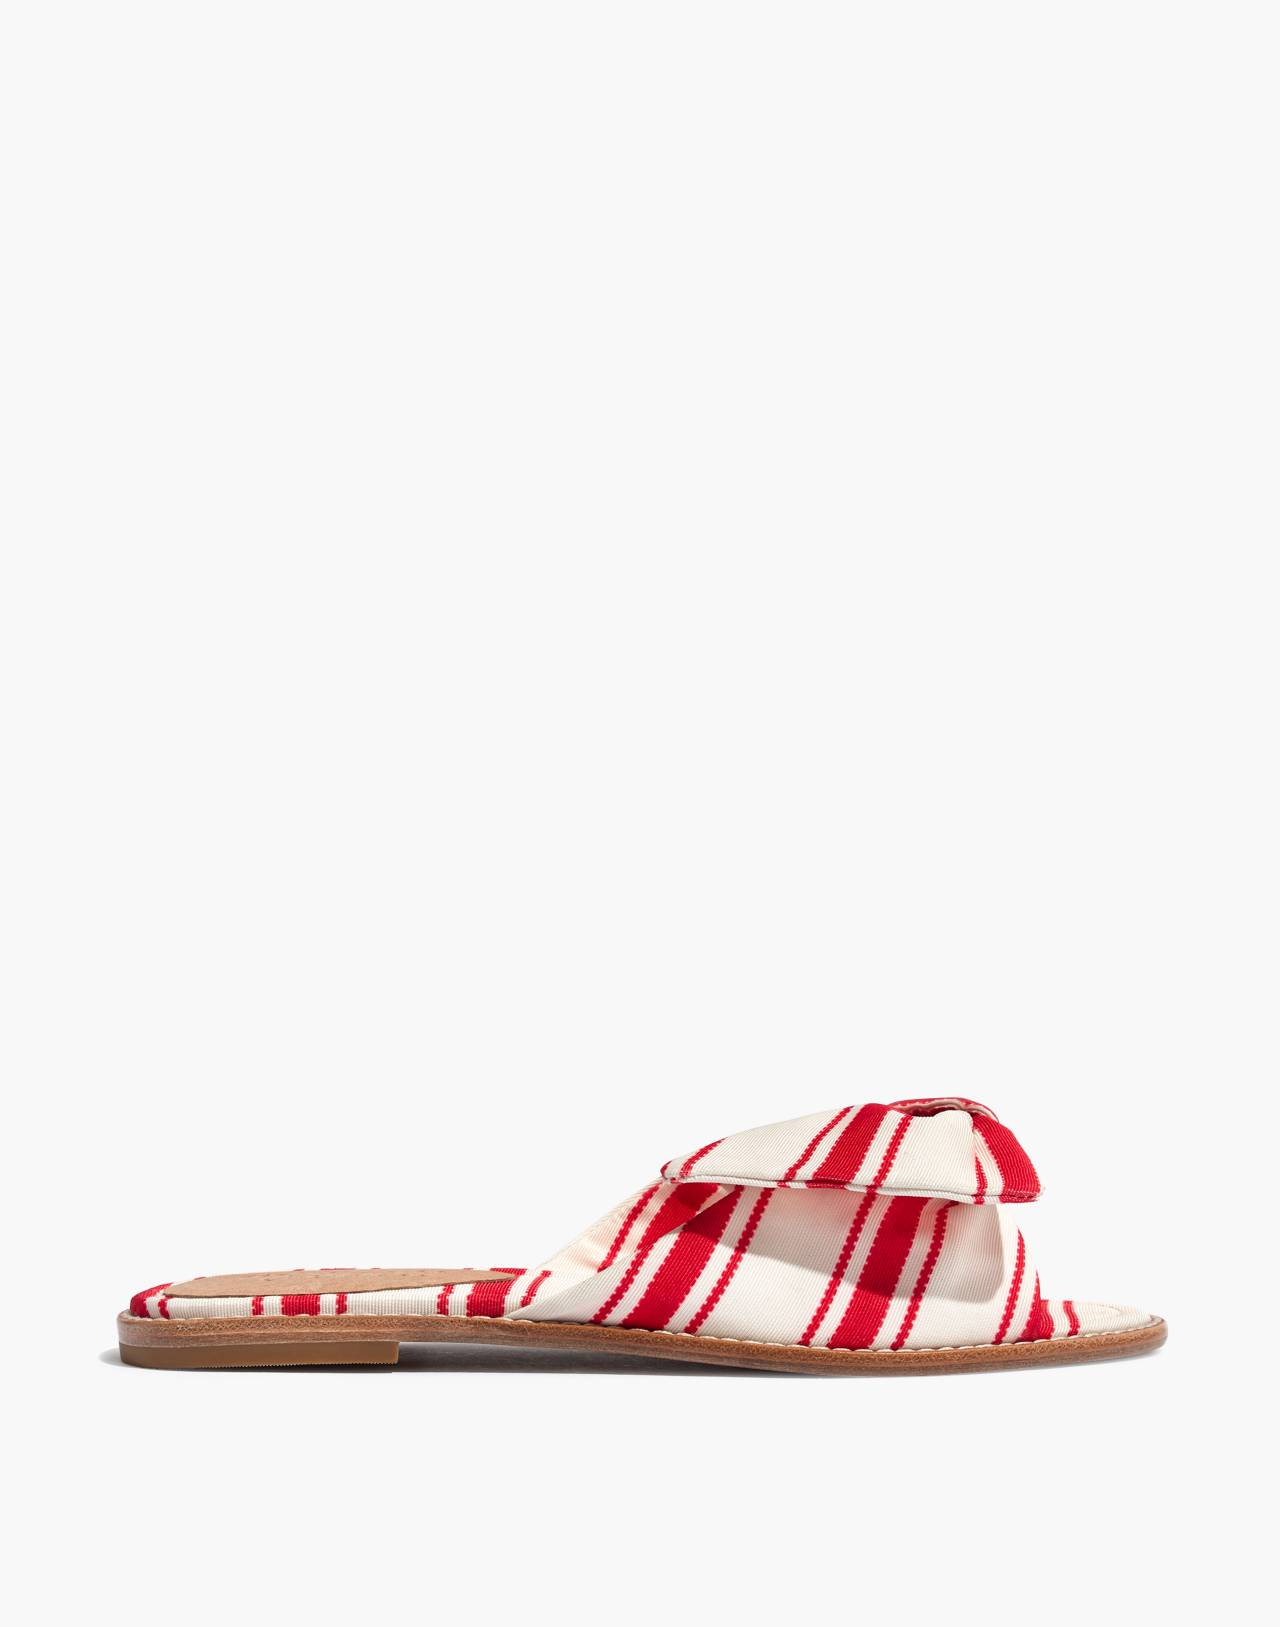 The Naida Half-Bow Sandal in Marcia Stripe in muslin image 3